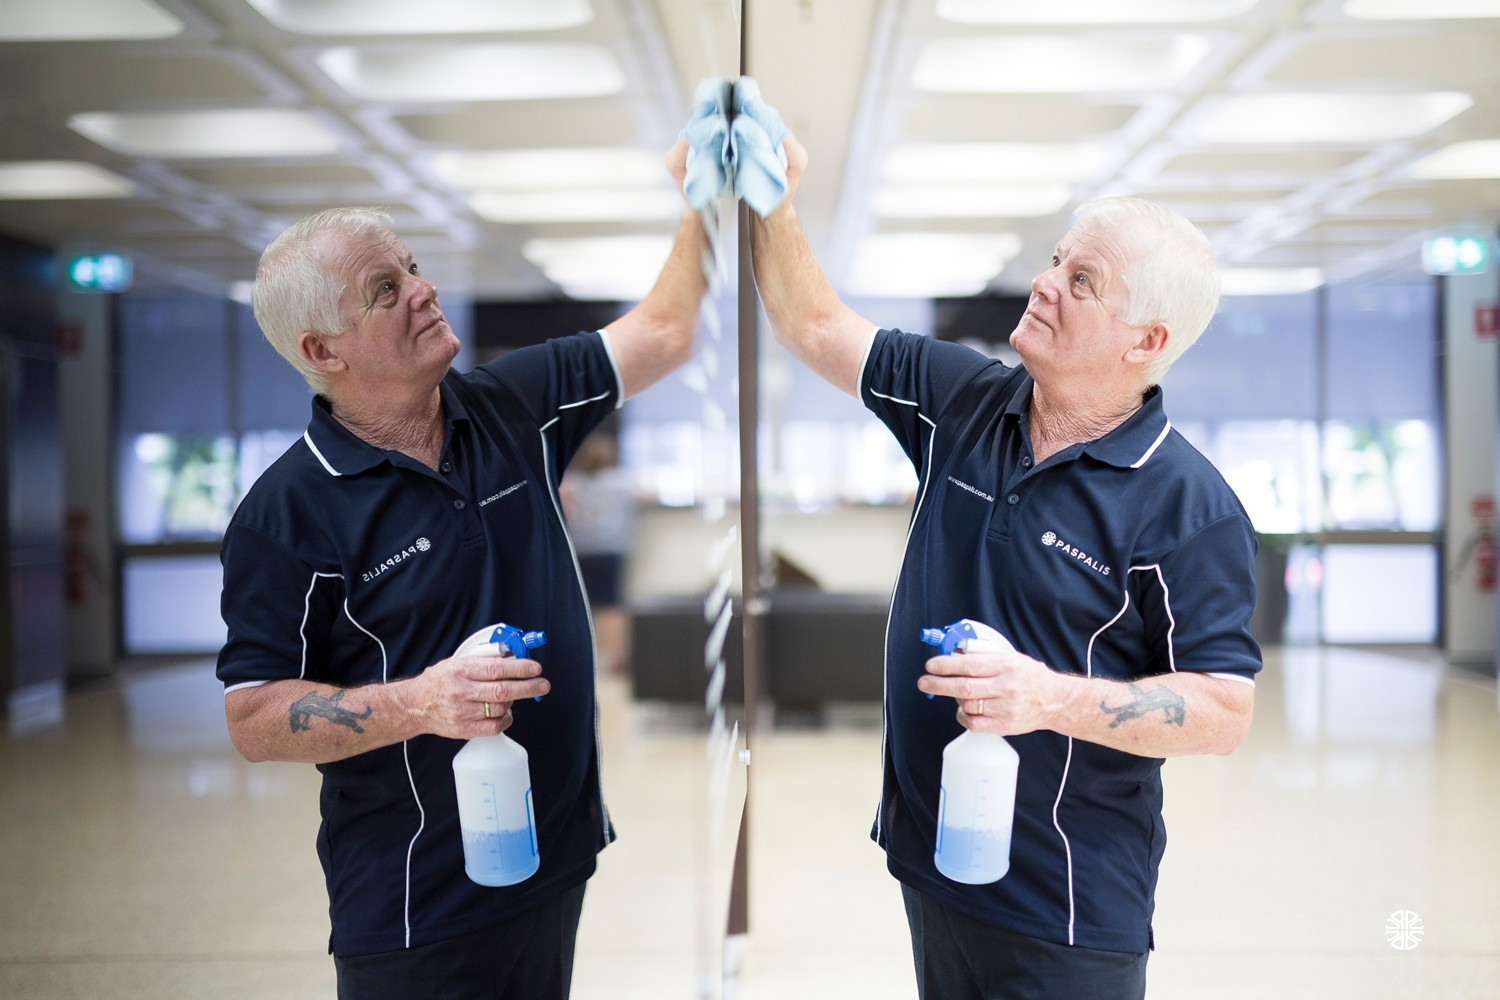 darwin cleaning services, paspalis facility services